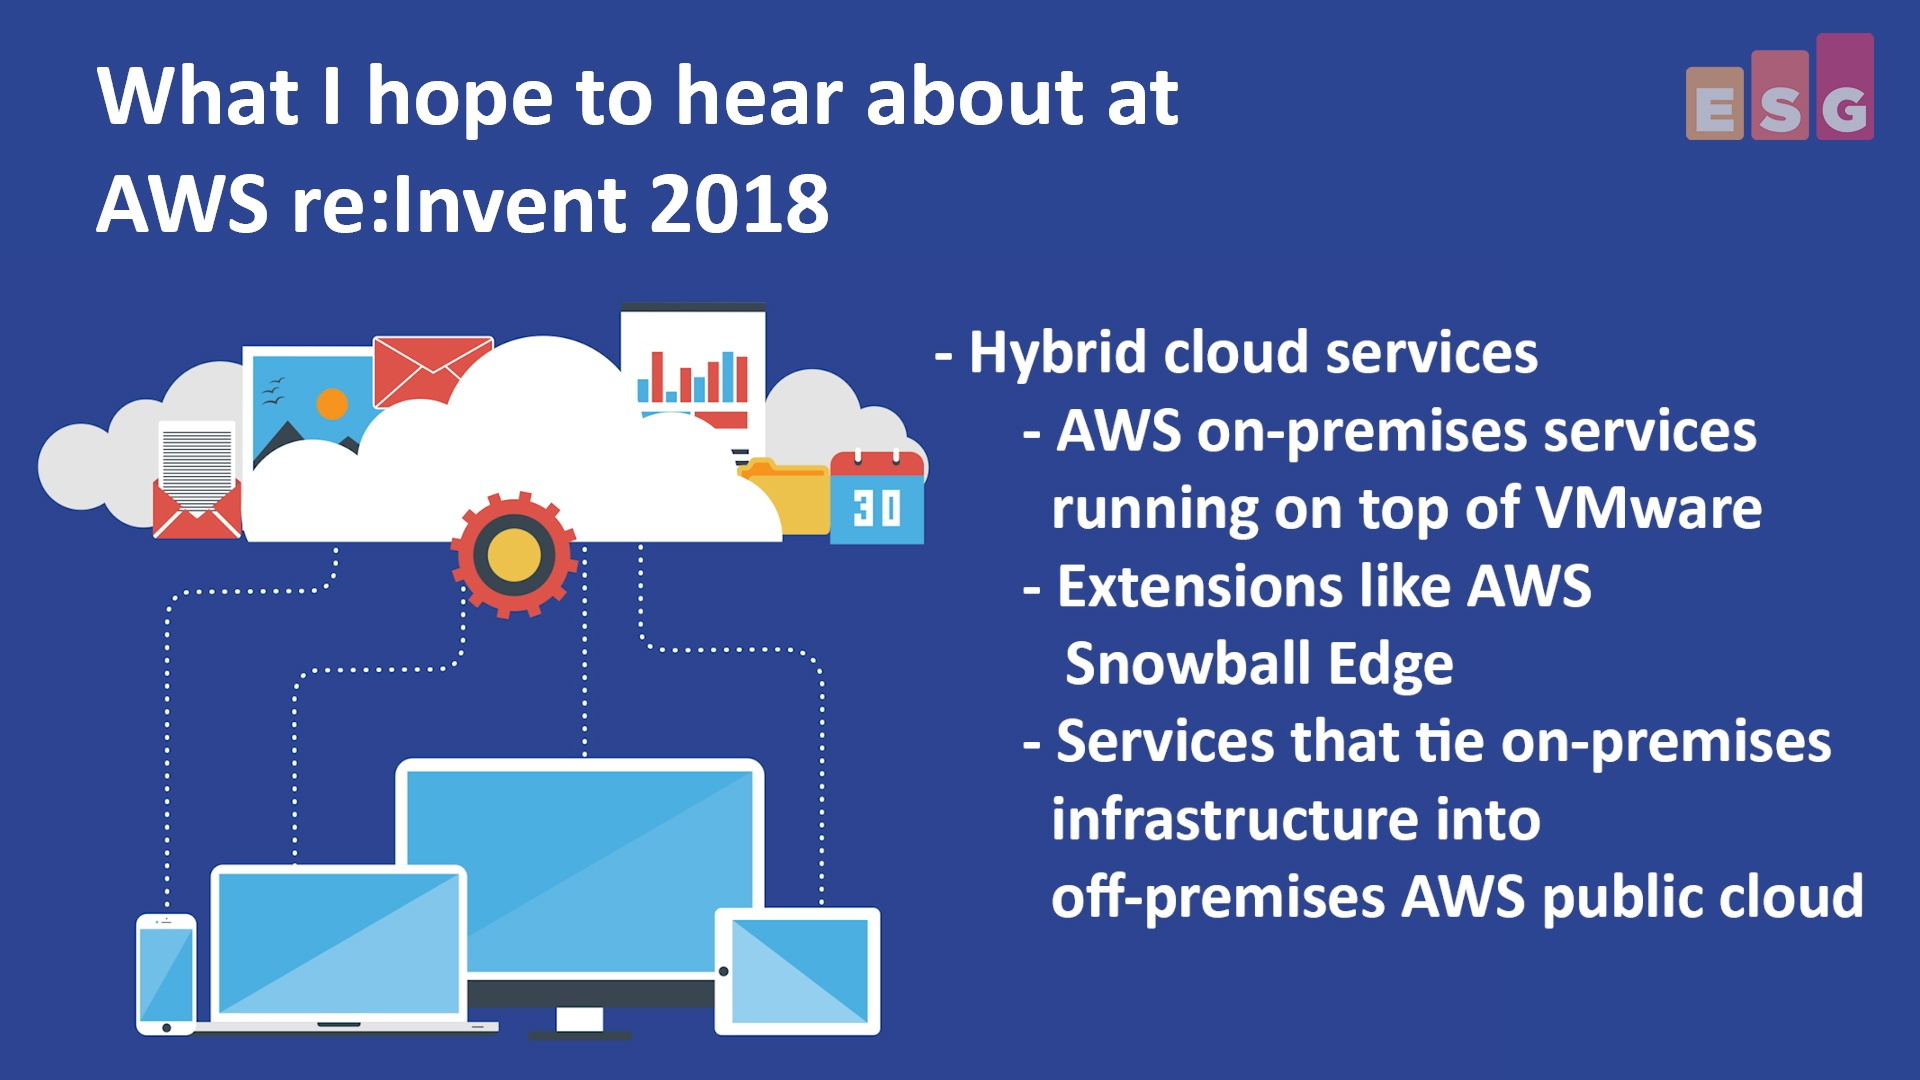 AWS re:Invent 2018 - What Should We Look Out For?